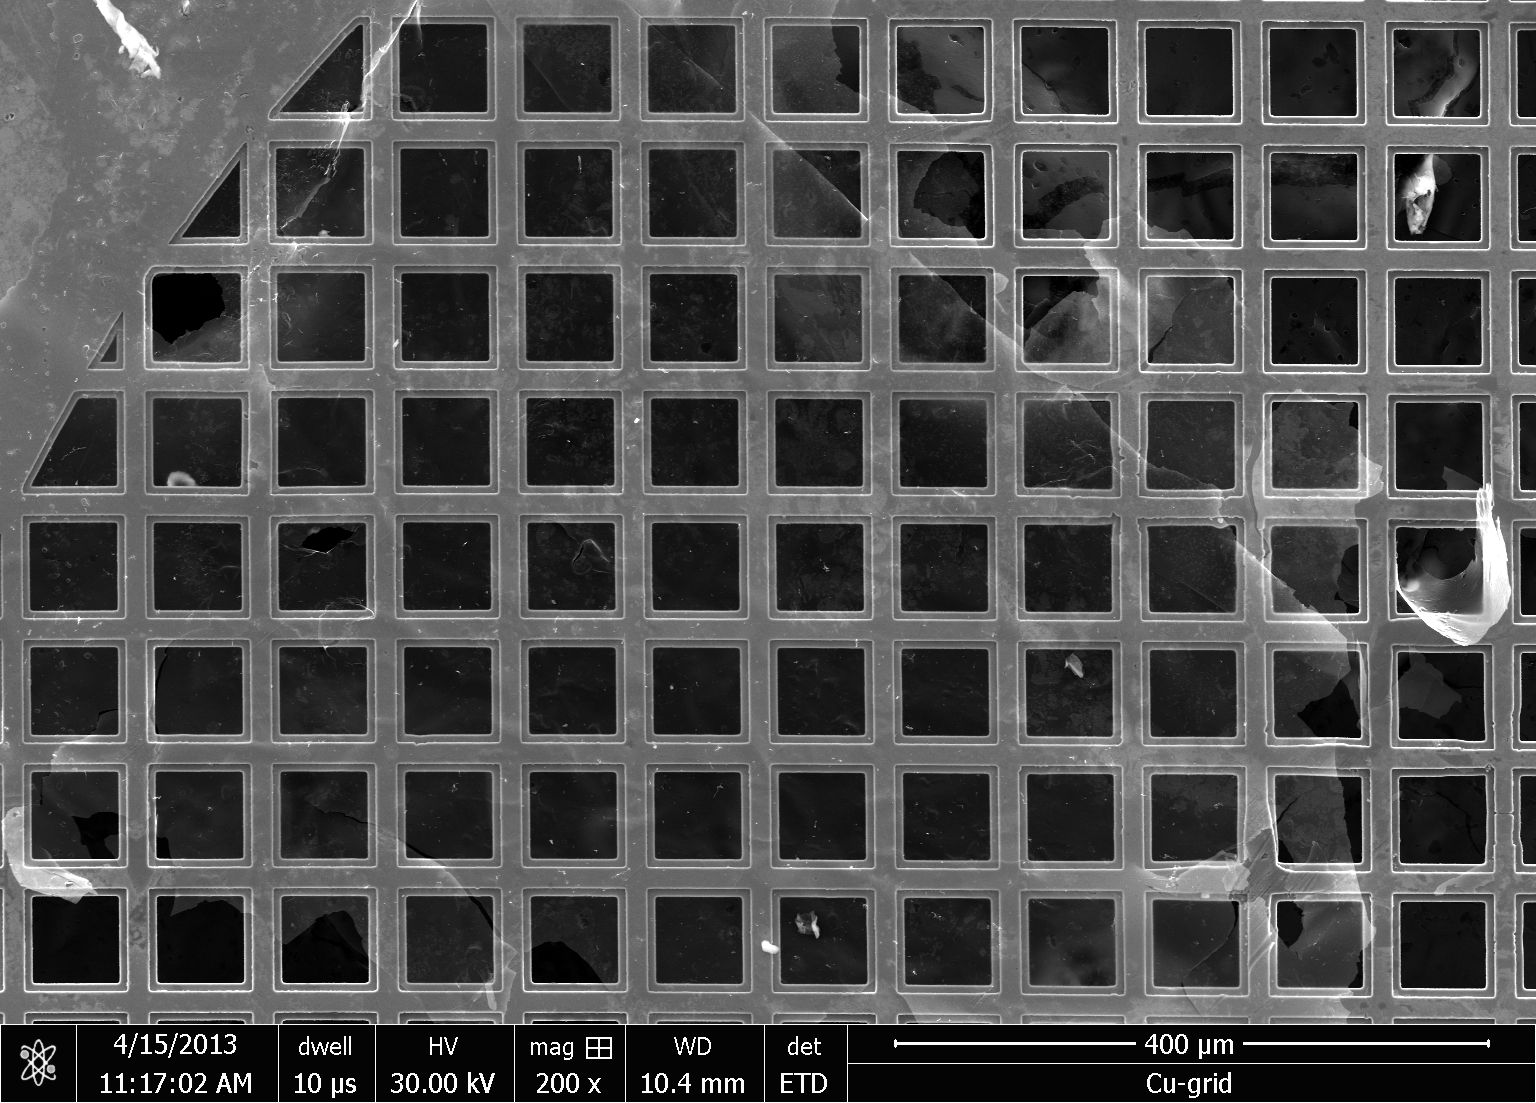 Fig. 1: SEM image of carbon coated copper grid at beam energy of 30 kV